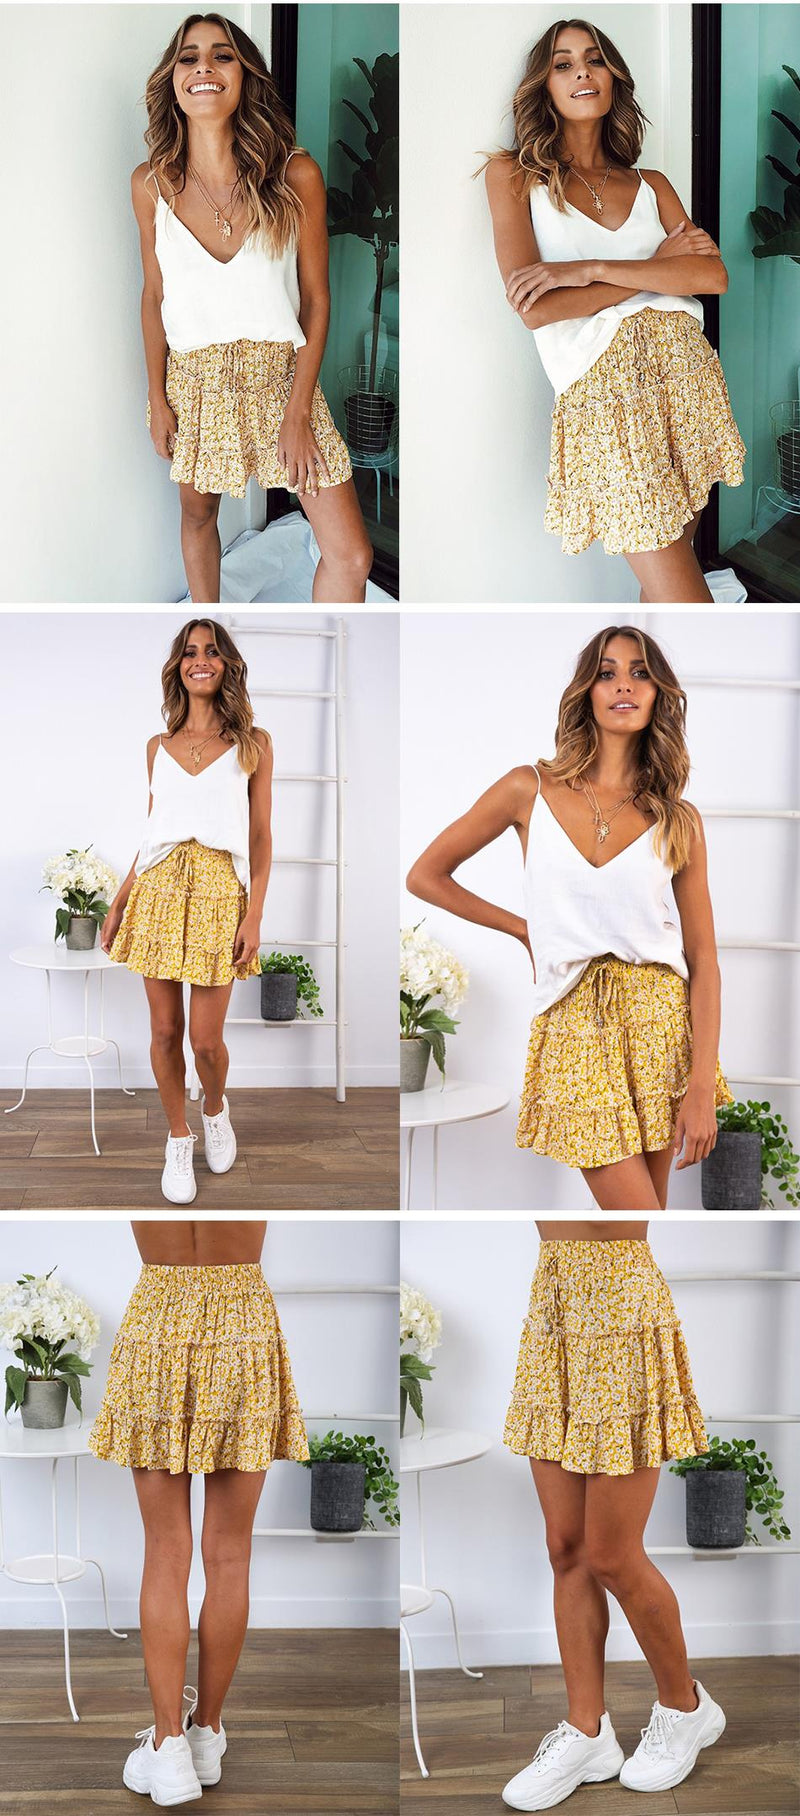 Lossky Skirt Women Floral Print Ruffle Lace-up Pleate Mini Skirt Boho Chi High Waist Short Summer Beach Wooden Ear Skirt Female - SunLify